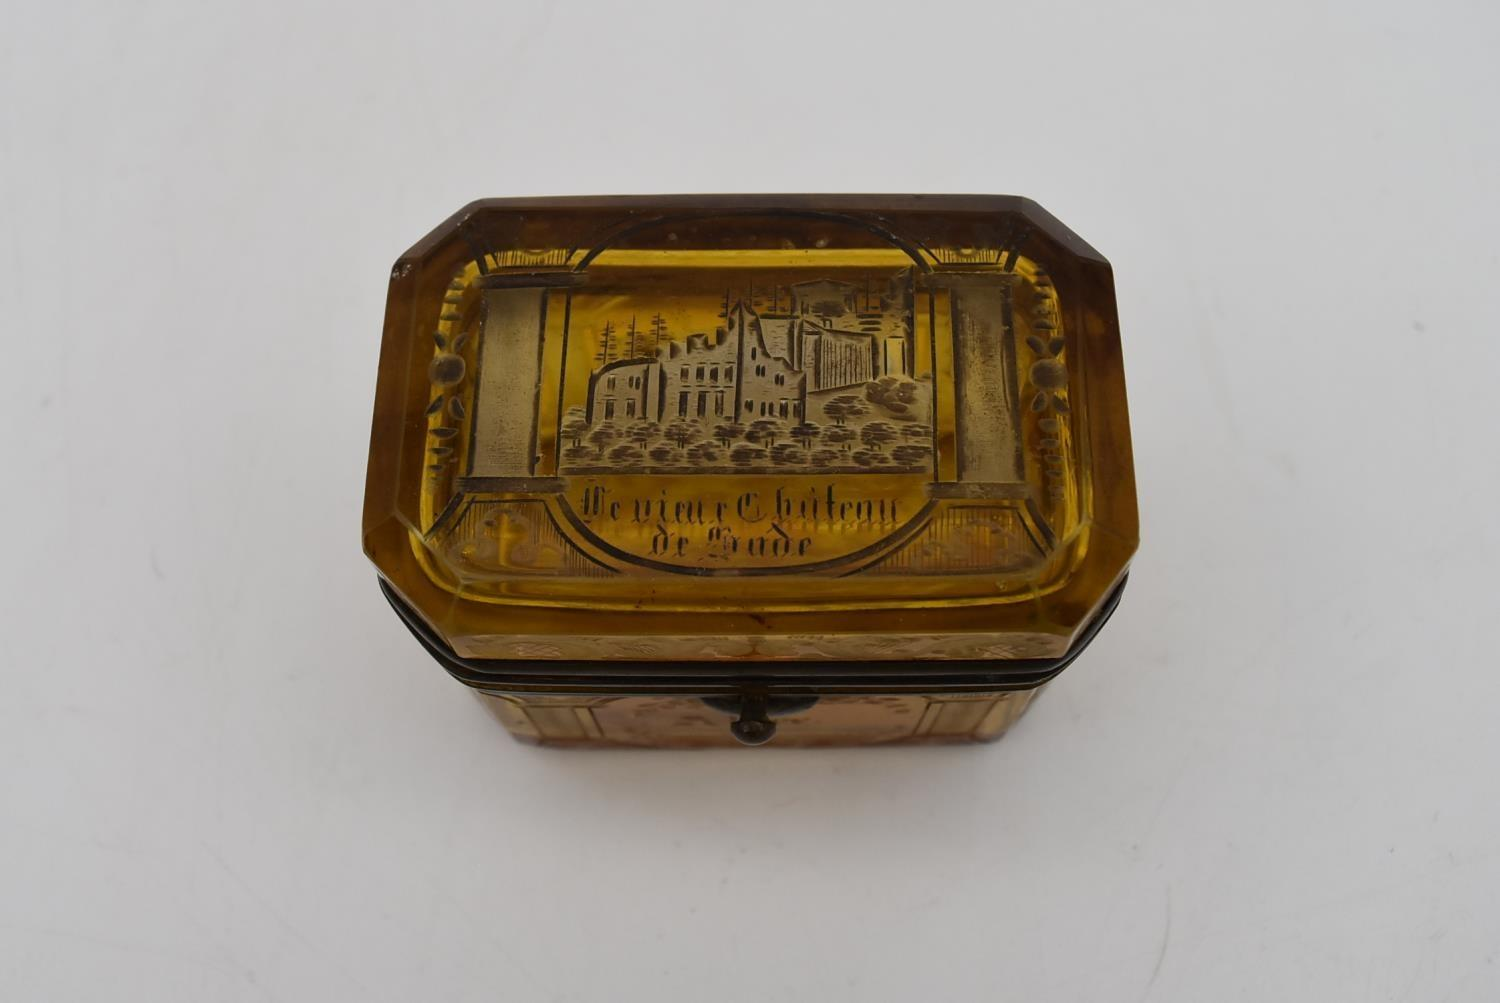 A small 19th century engraved amber glass and ormolu mounted box. H.7x8cm - Image 2 of 4